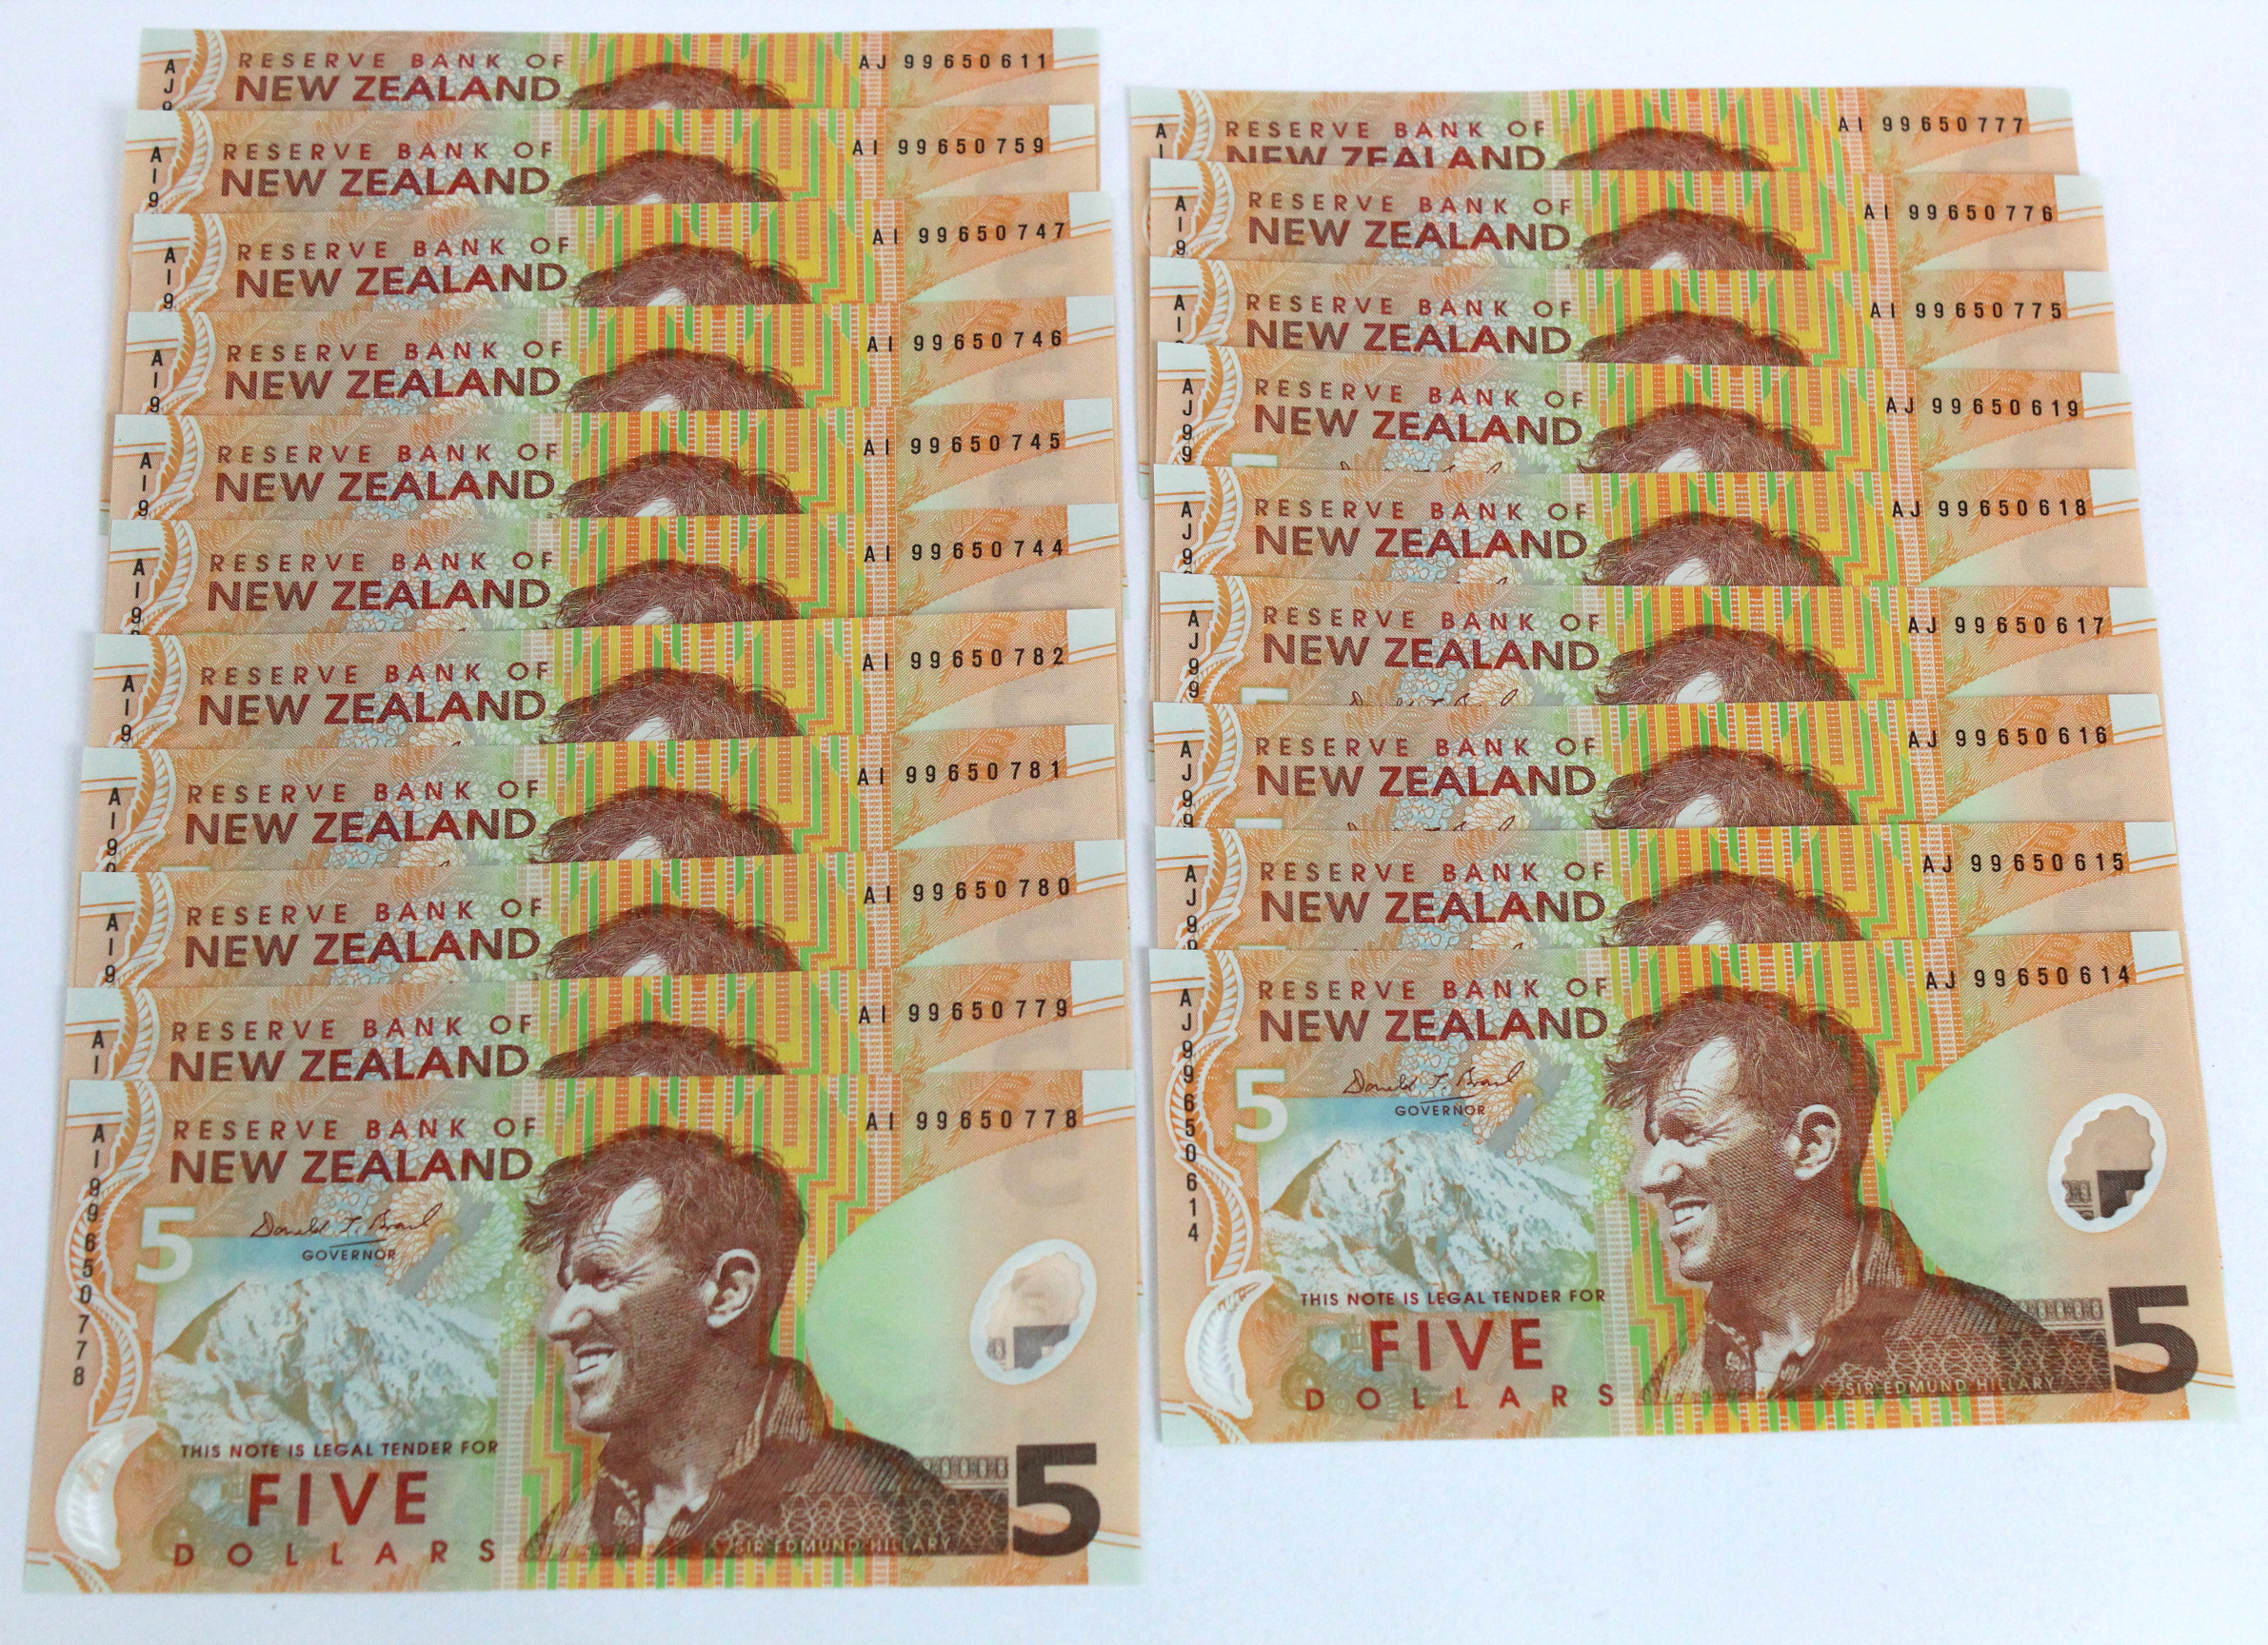 New Zealand 5 Dollars (20) issued 1999, Polymer issue signed D.T. Brash, in consecutively numbered